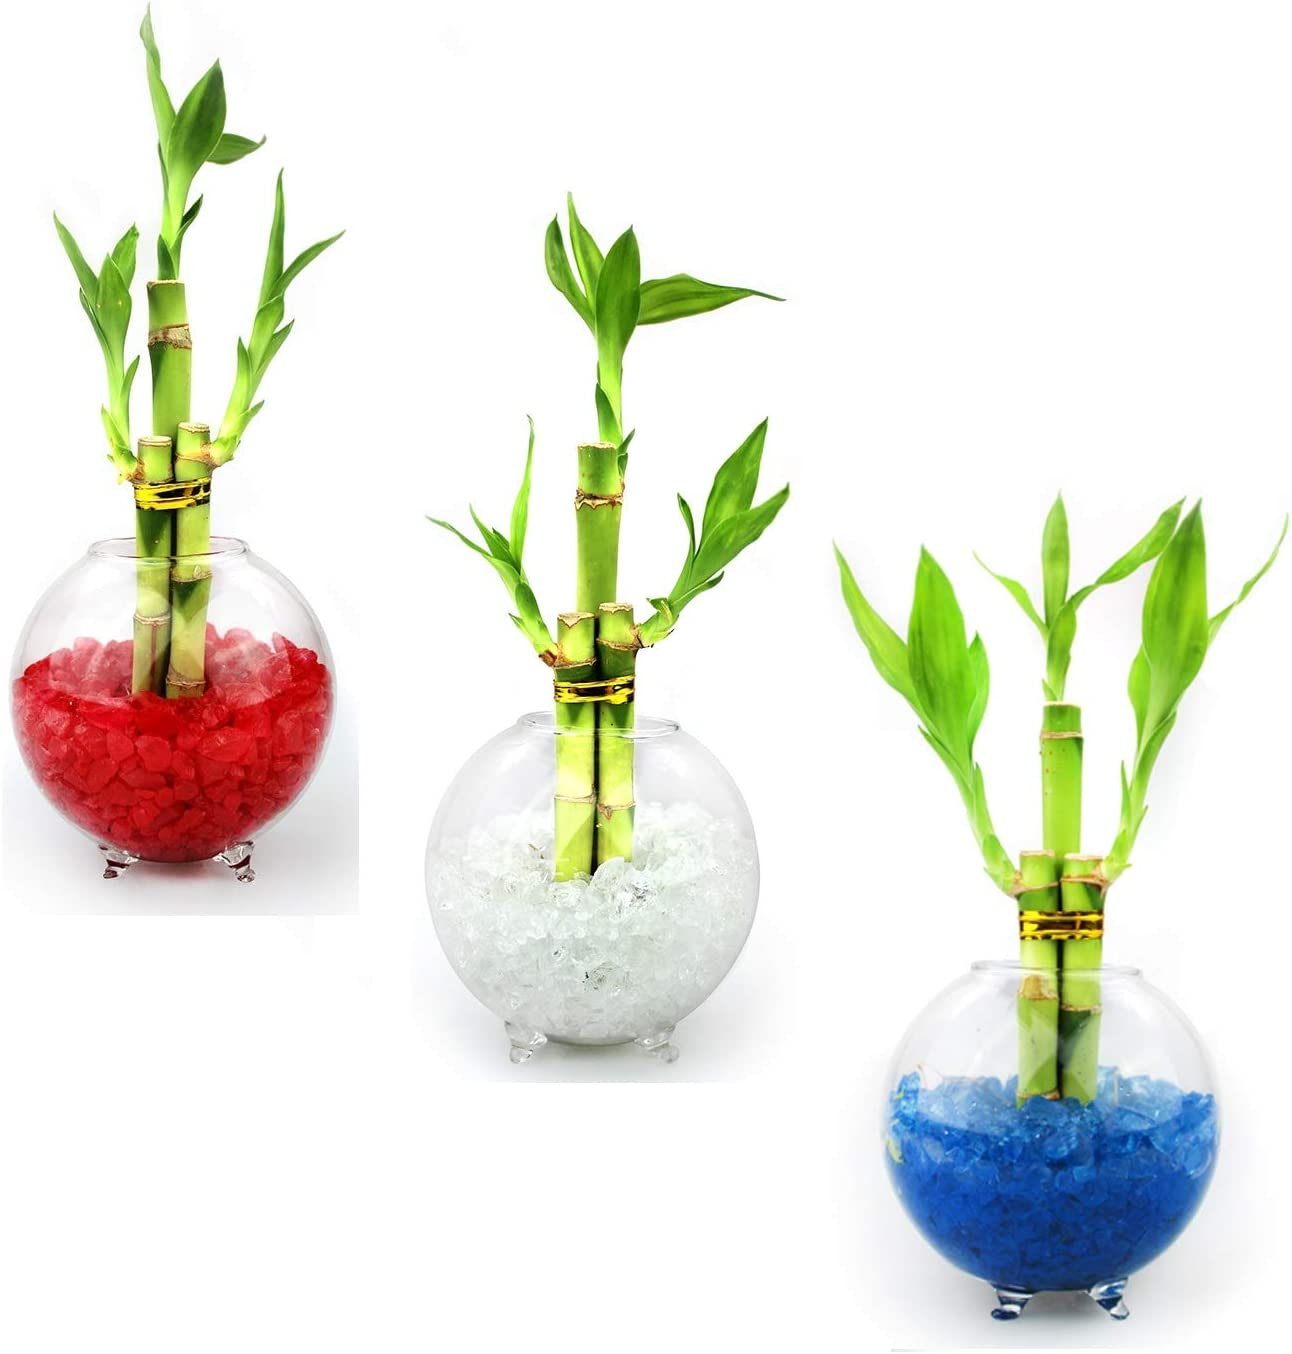 NW Wholesaler – Set of 3 Live Lucky Bamboo 3 Stalk Arrangements in Glass Orb Vase Terrariums with Colored Glass Pebbles Red, White, Blue